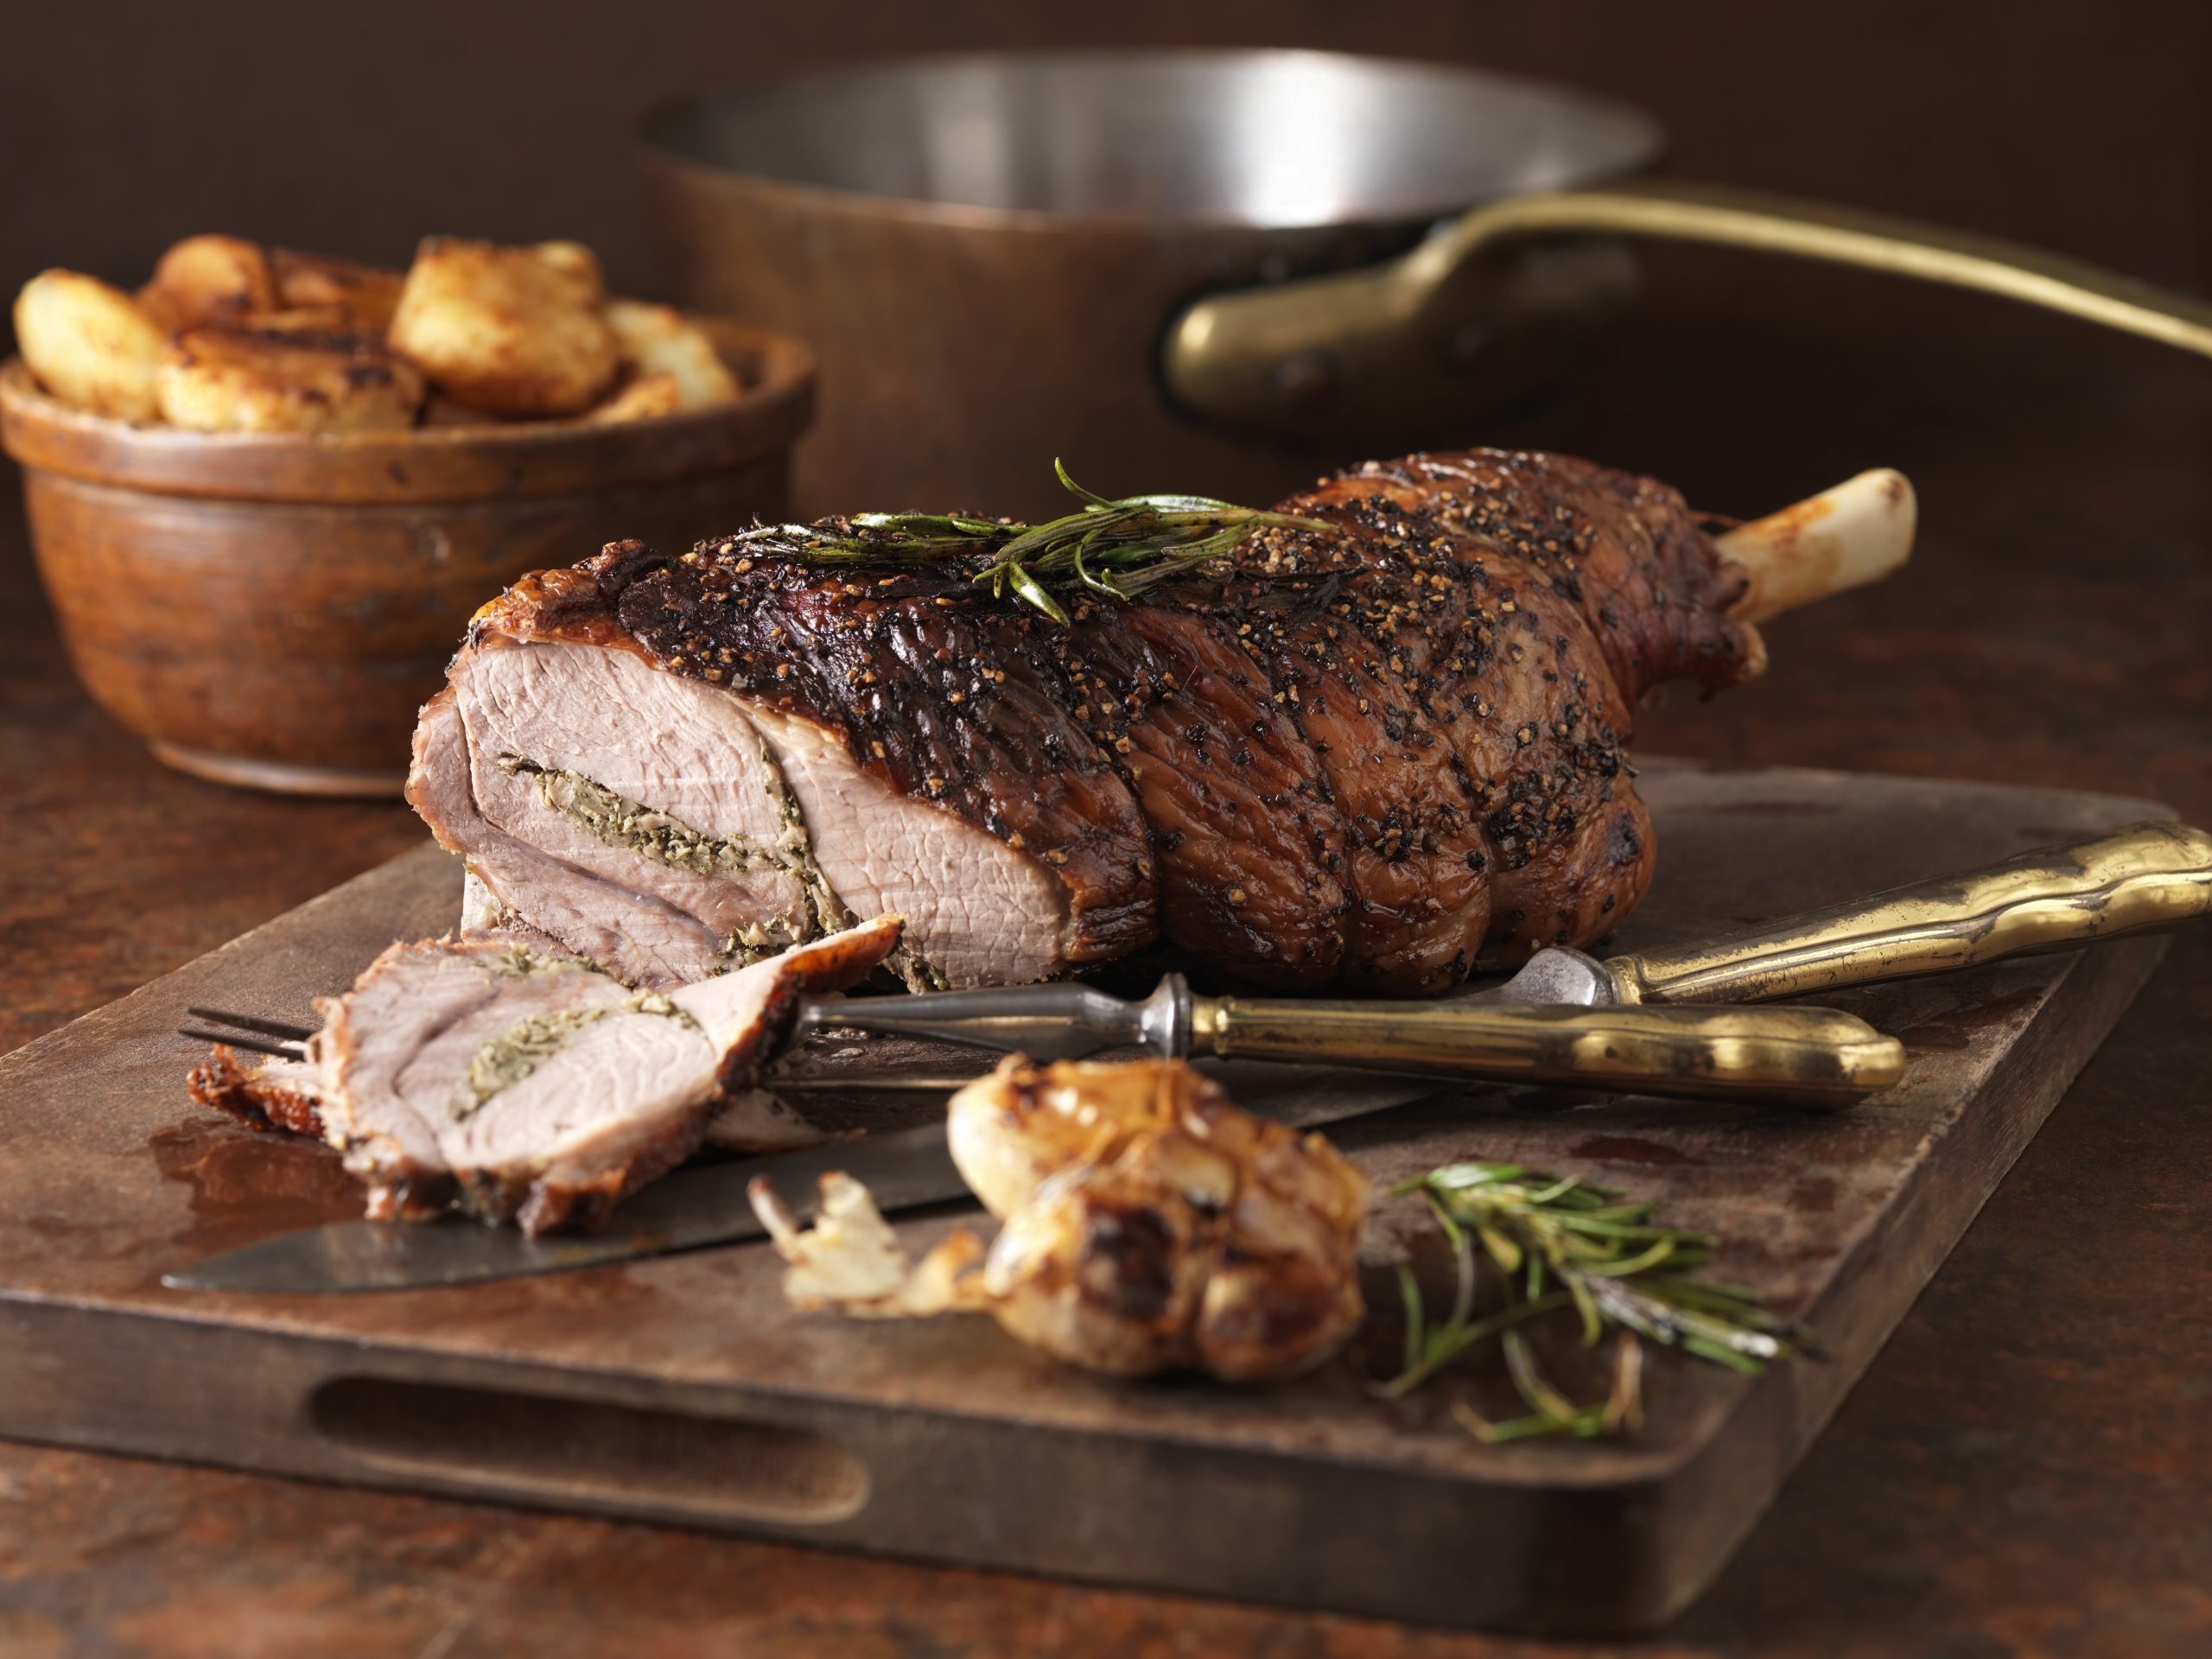 Easter dinner on a plate with rosemary and garlic leg of lamb and roast potatoes